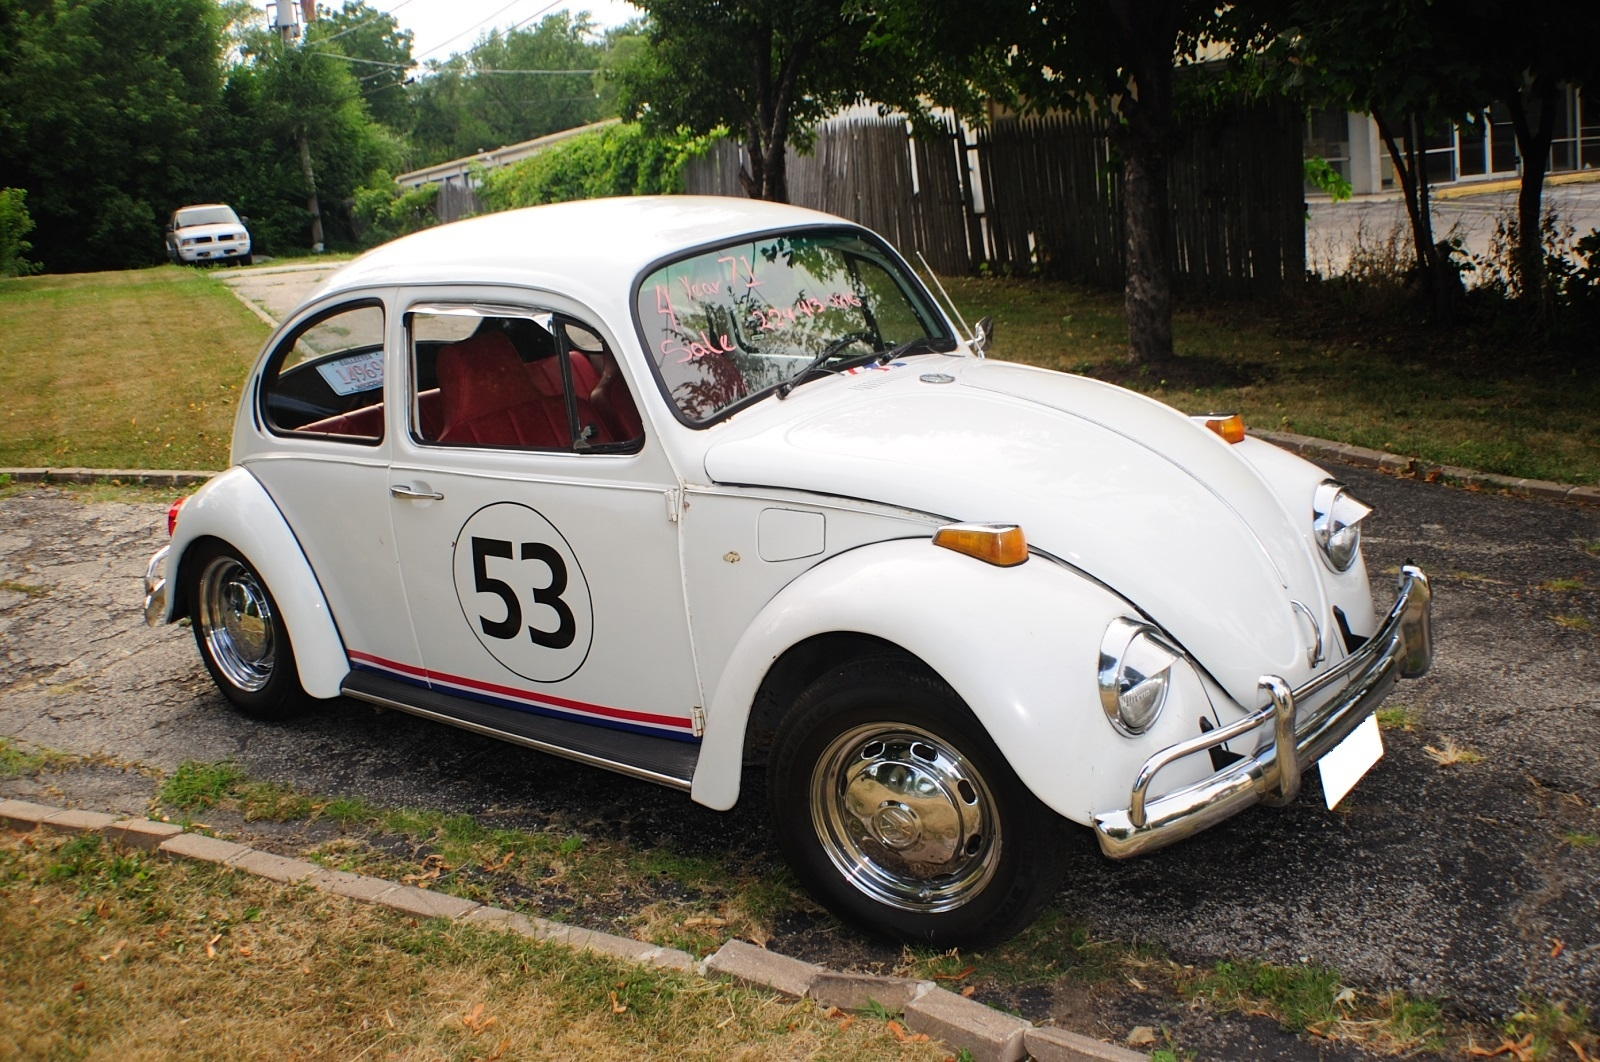 1971 Volkswagen Bug Beetle Herbie Replica Manual VW Sale Gurnee Kenosha Mchenry Chicago Illinois